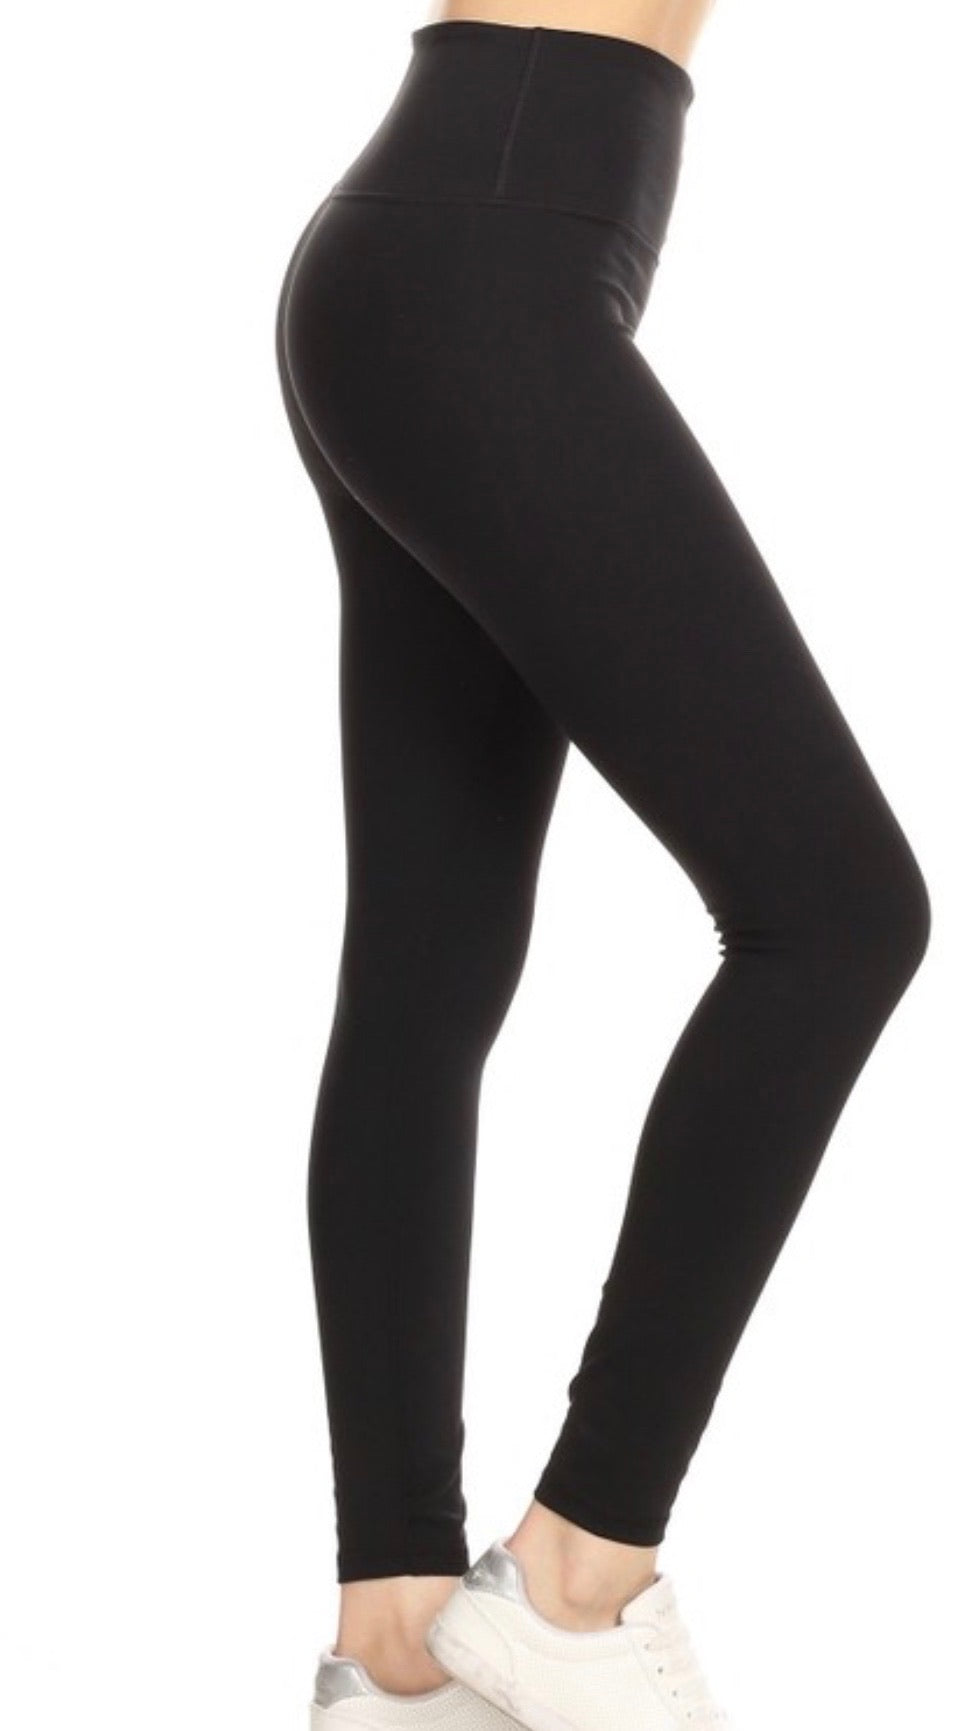 High Waisted High Quality Leggings - Black